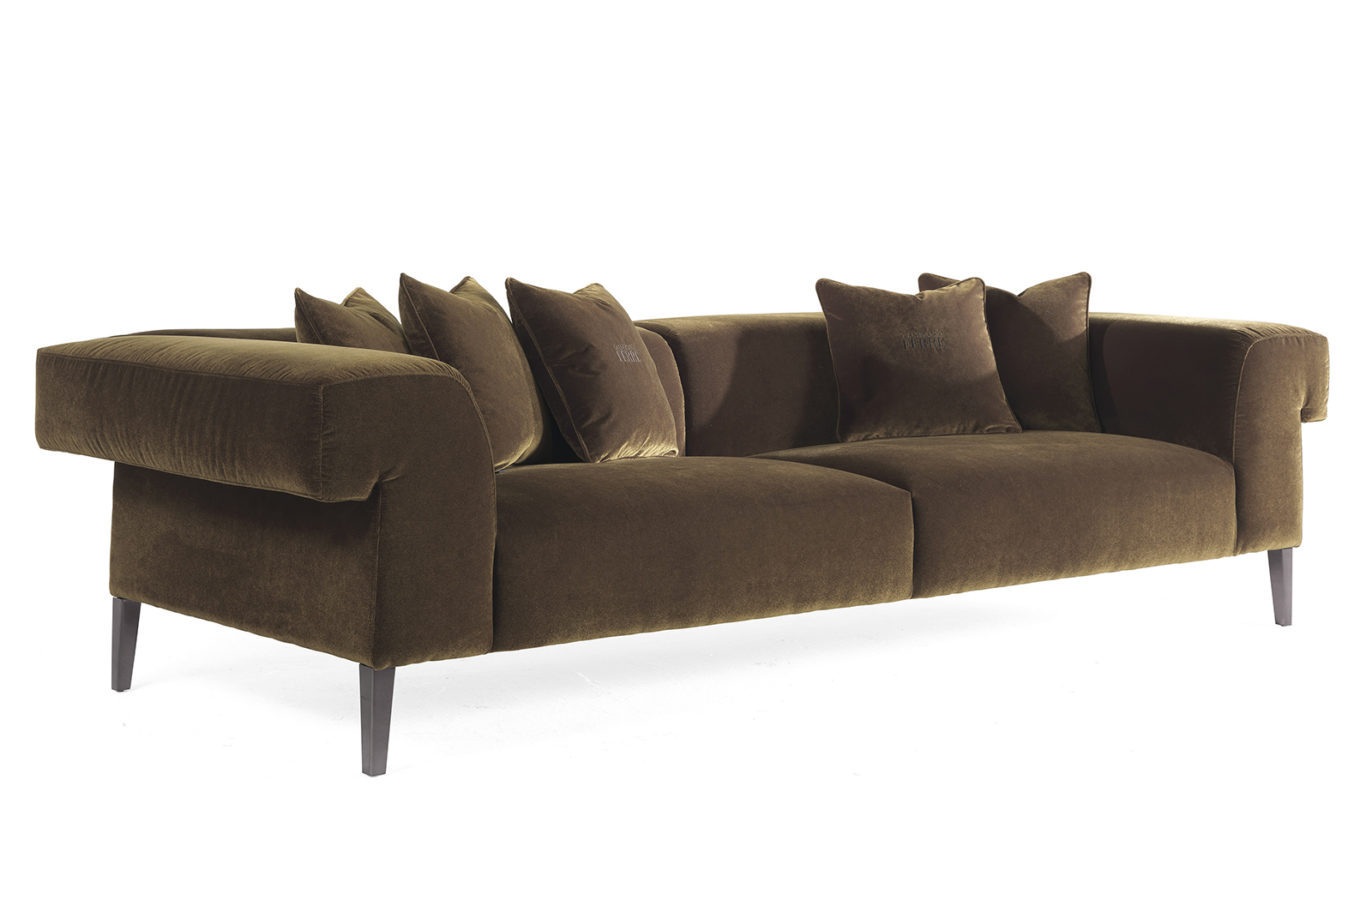 Gianfranco Ferre Home Soho Sofa 03